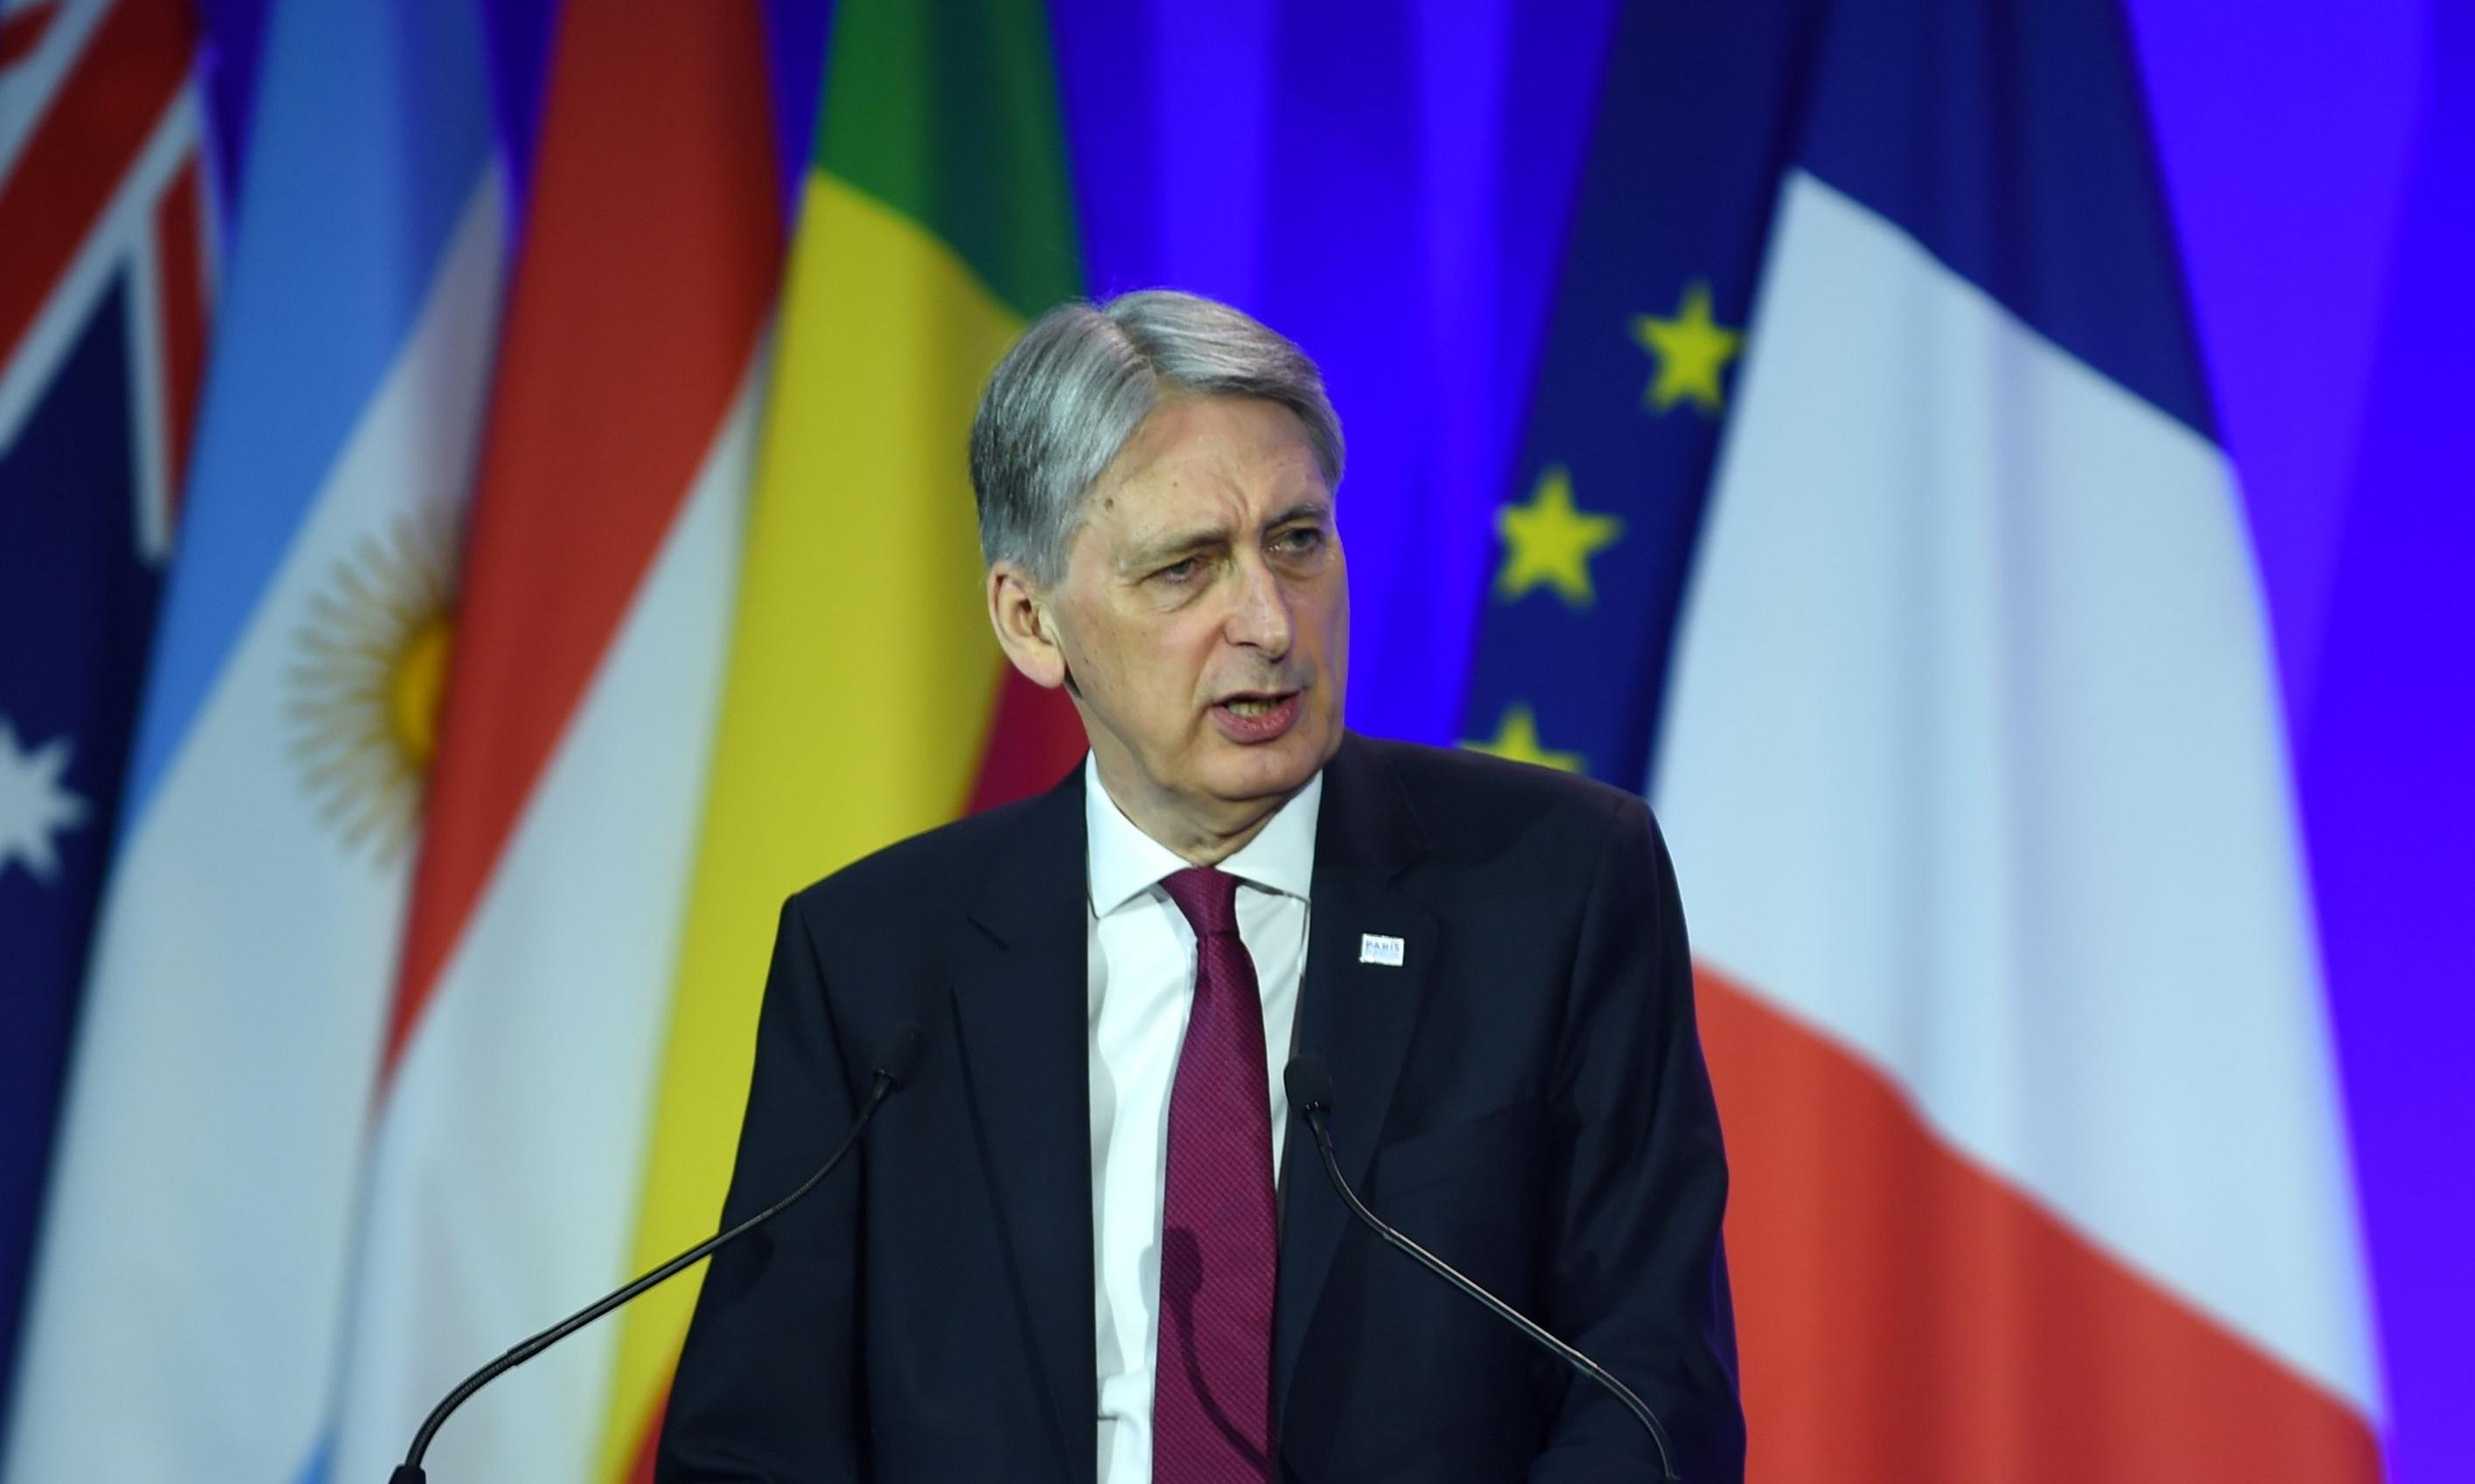 No-deal Brexit would be a betrayal, says Philip Hammond